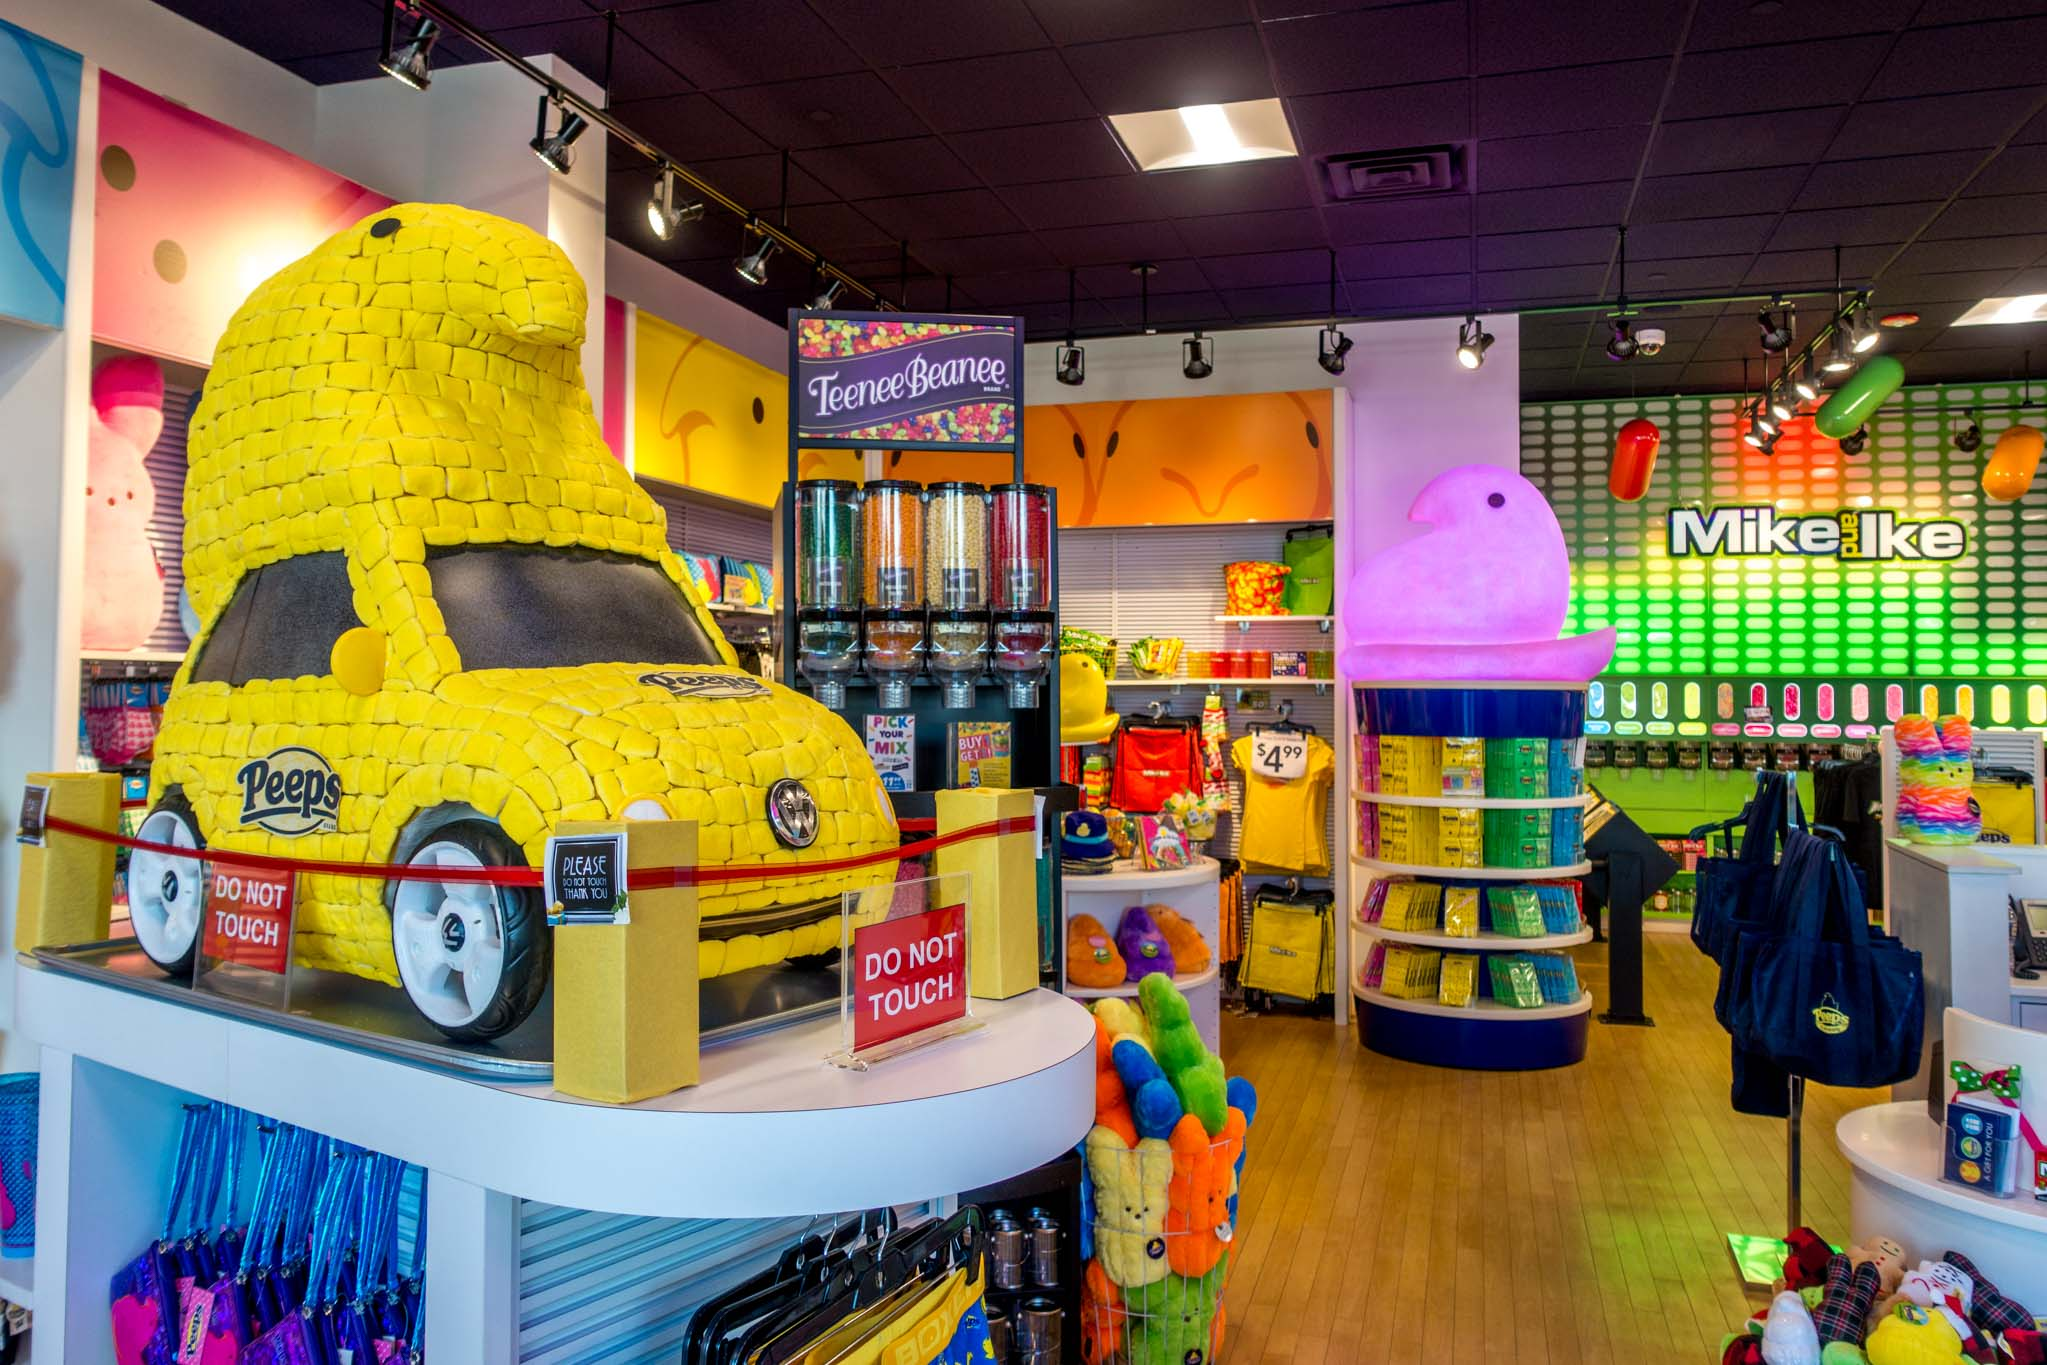 Yellow car made of Peeps candy displayed in a store